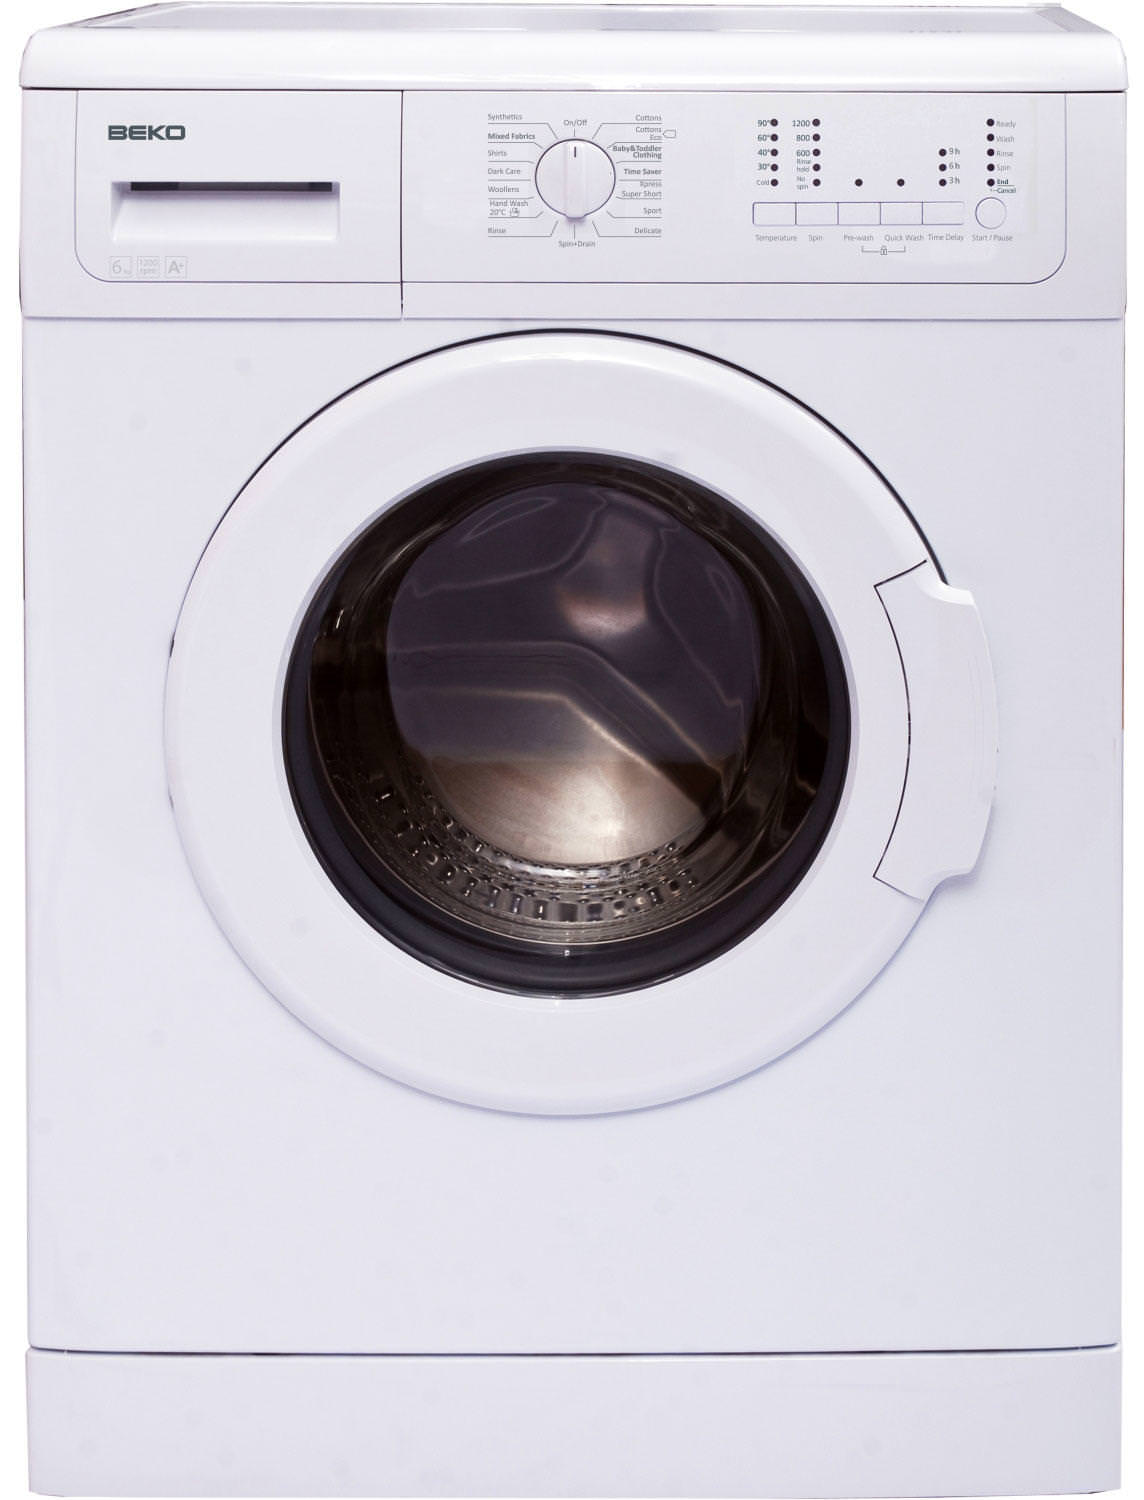 Beko WMC126W 6 Kg 1200 Spin Washing Machine